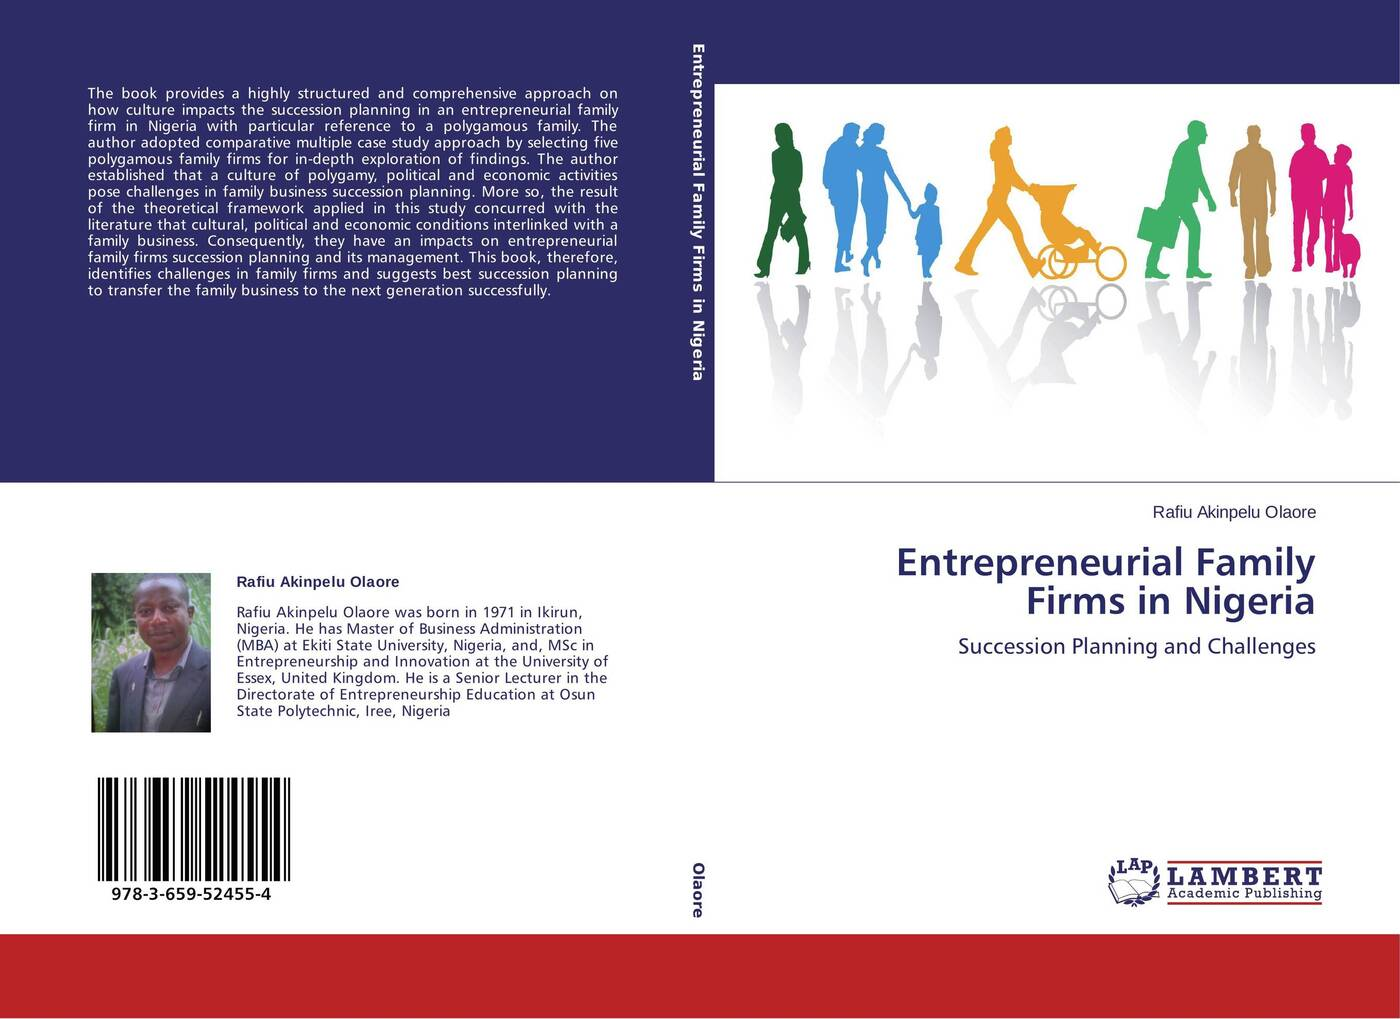 Rafiu Akinpelu Olaore Entrepreneurial Family Firms in Nigeria economic and political impacts of business improvement district